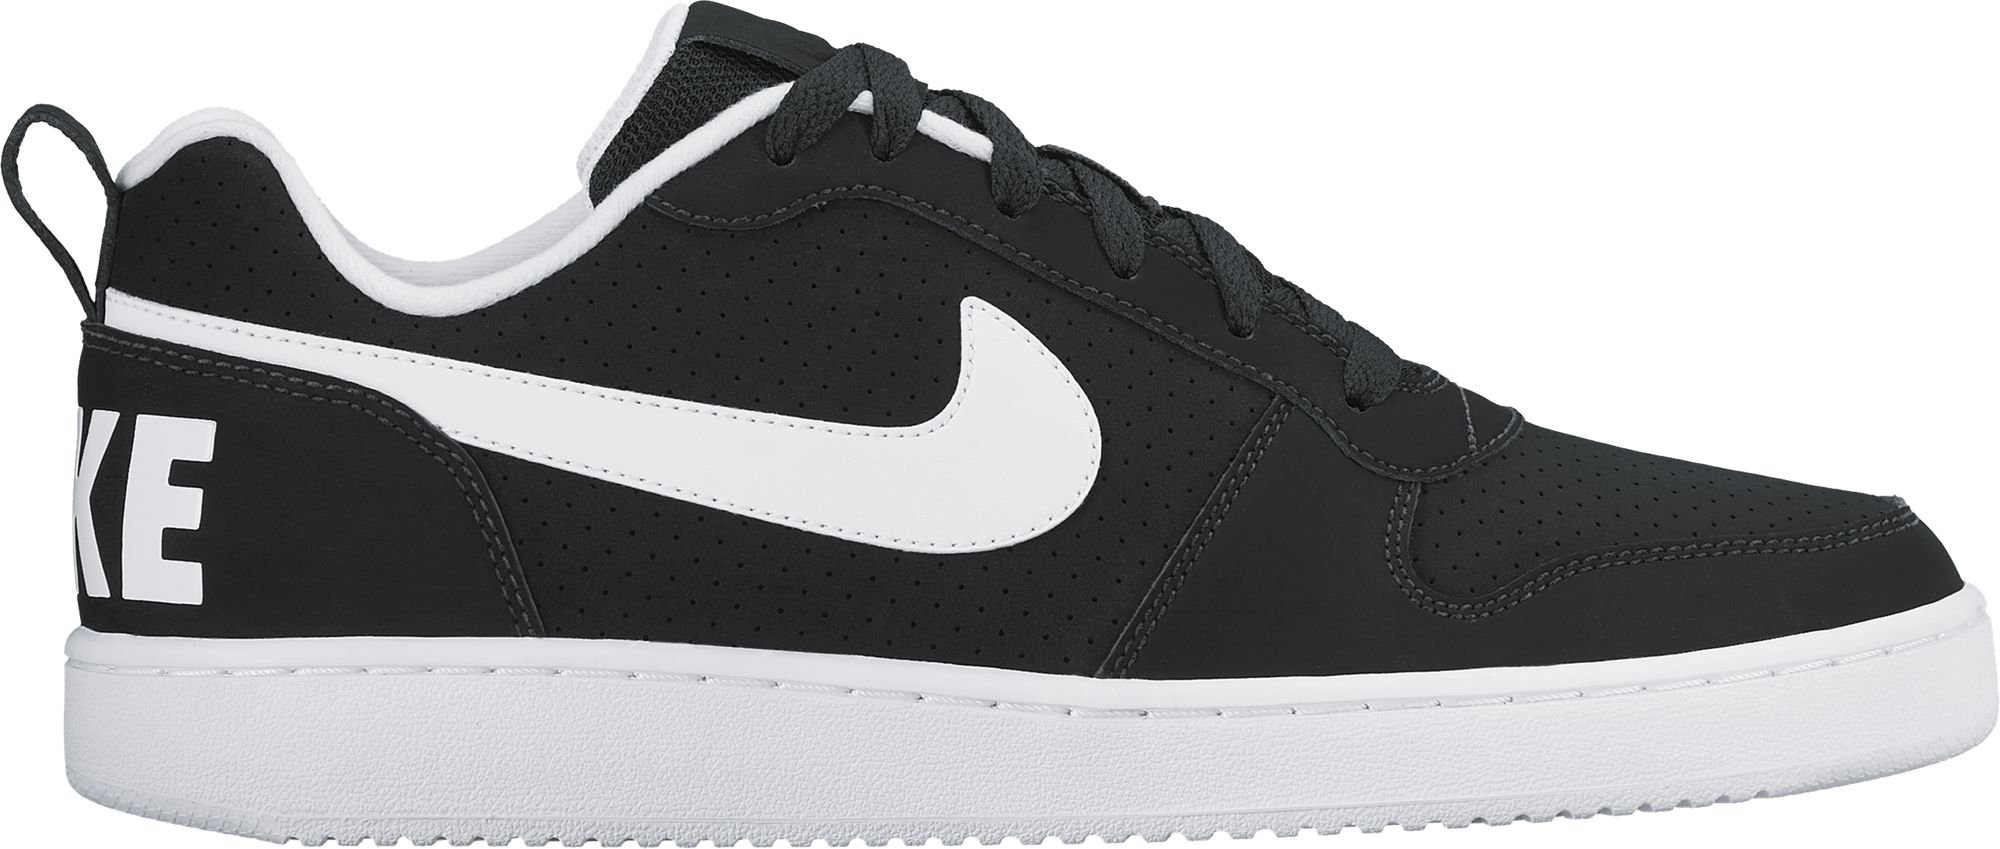 NIKE Men's Court Borough Low Basketball Shoe, Black/White, 9.0 Regular US by NIKE